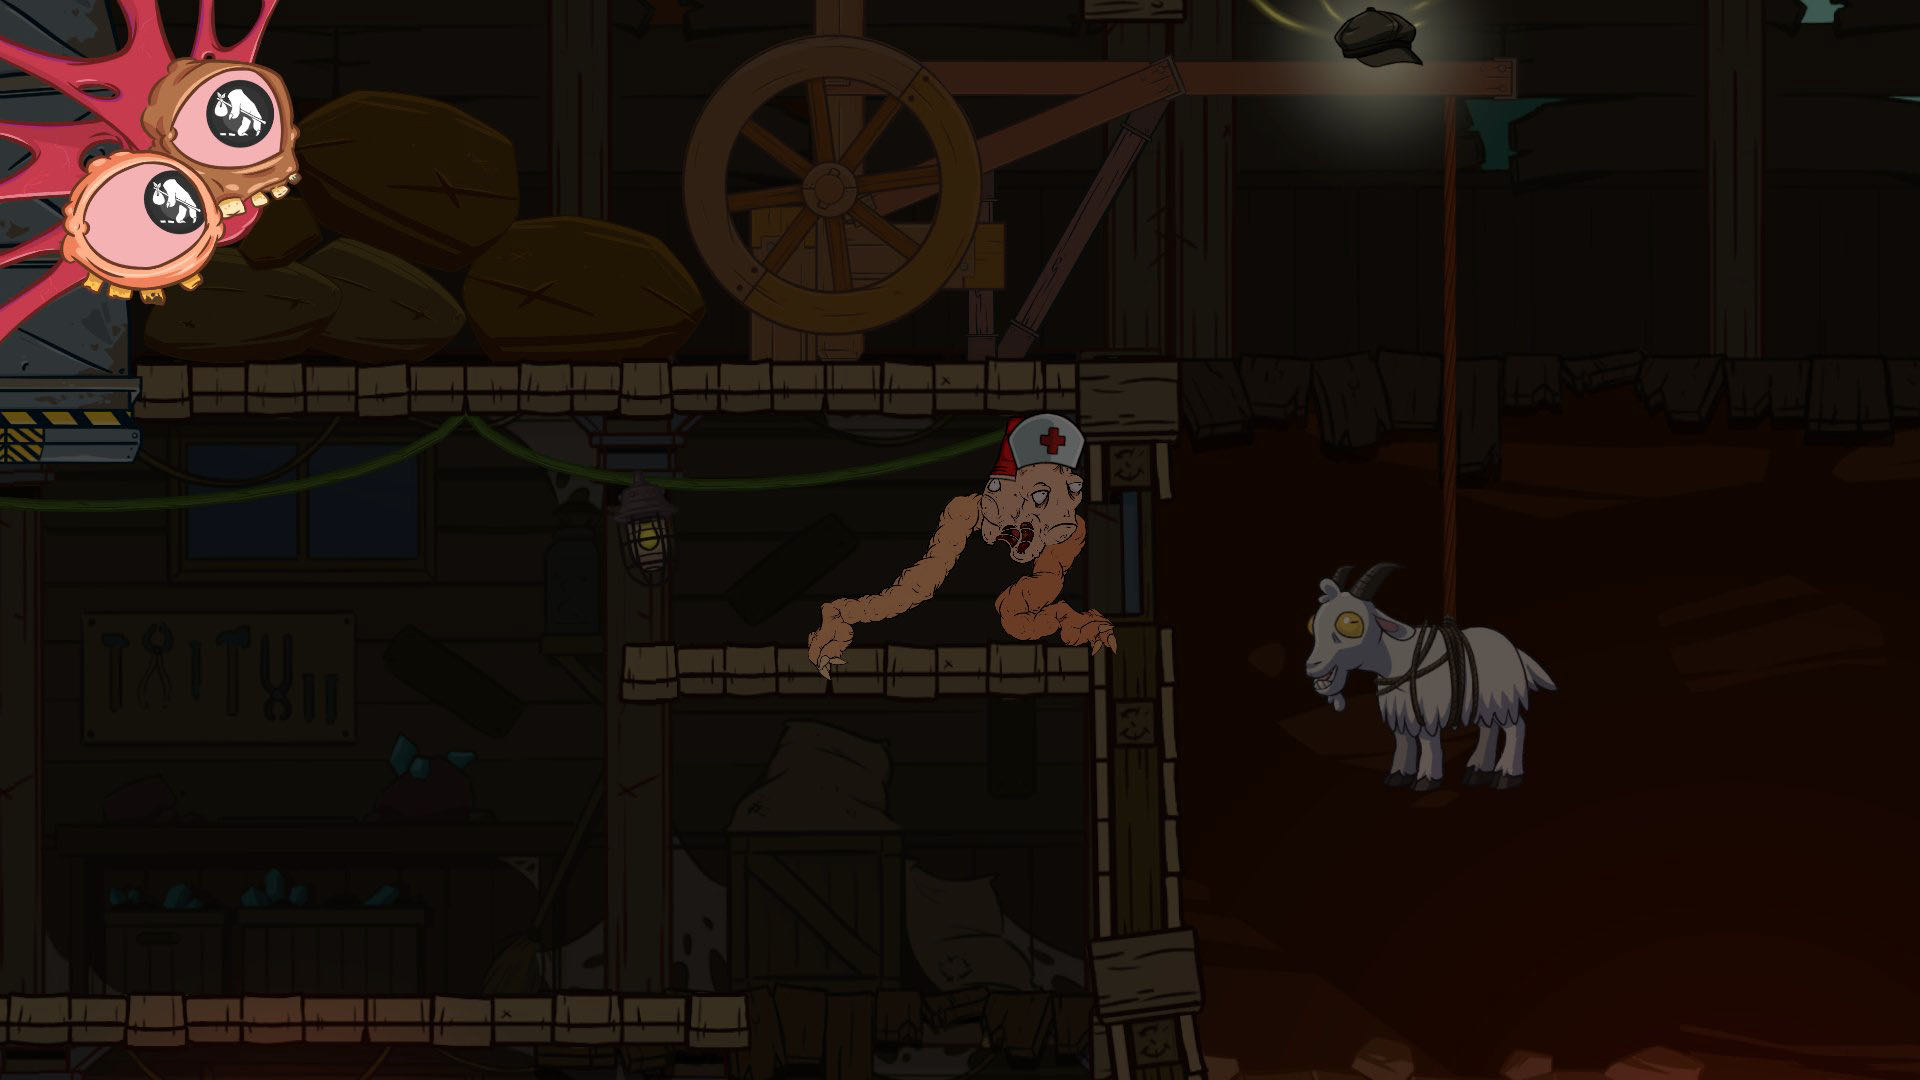 A screenshot from Struggling, showing your blob approaching a goat, which is hanging from a pulley system.